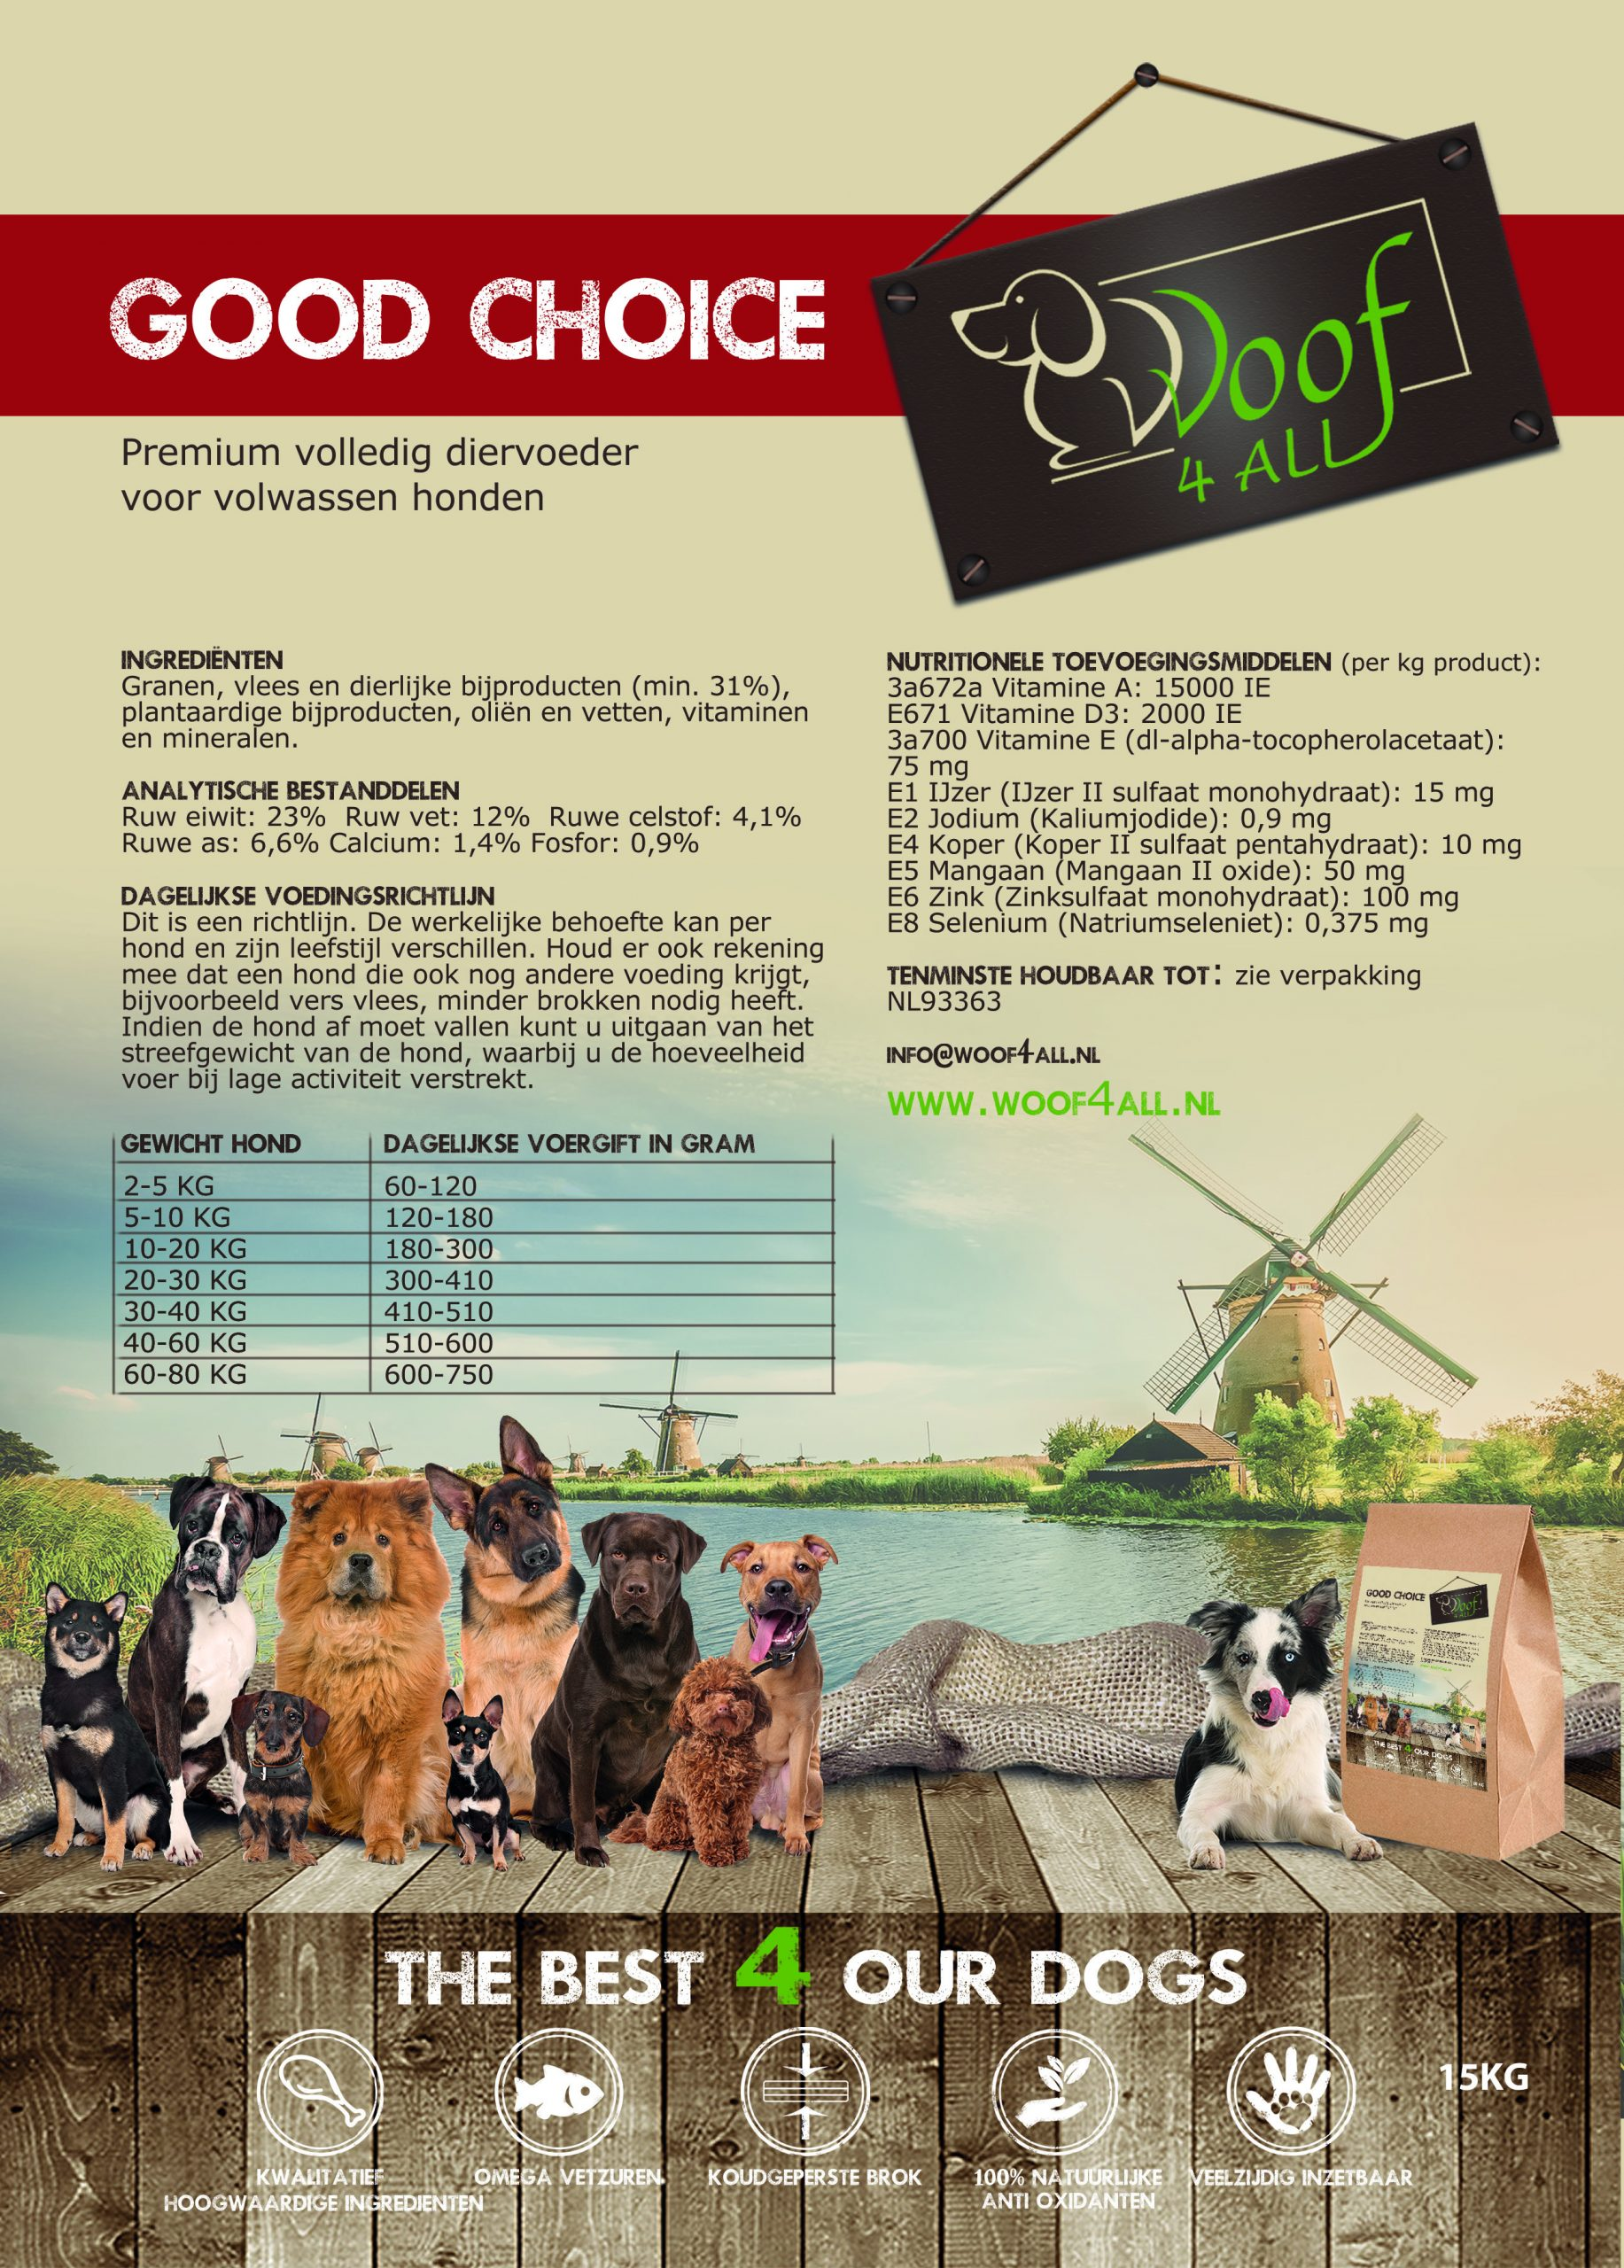 Woof 4 All - Good choice hondenvoer